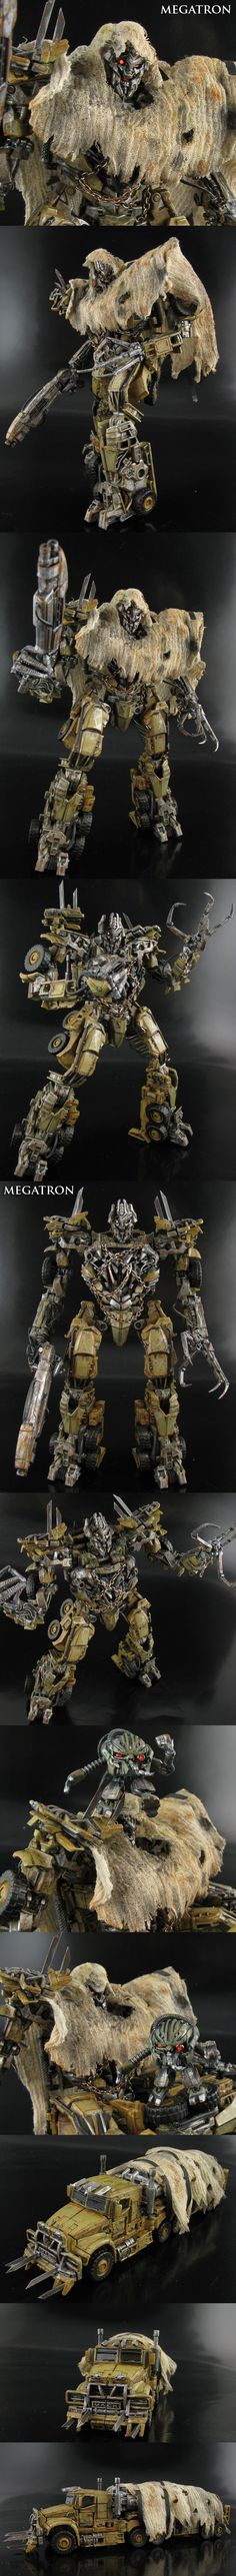 All Hail Megatron by *Jin-Saotome on deviantART